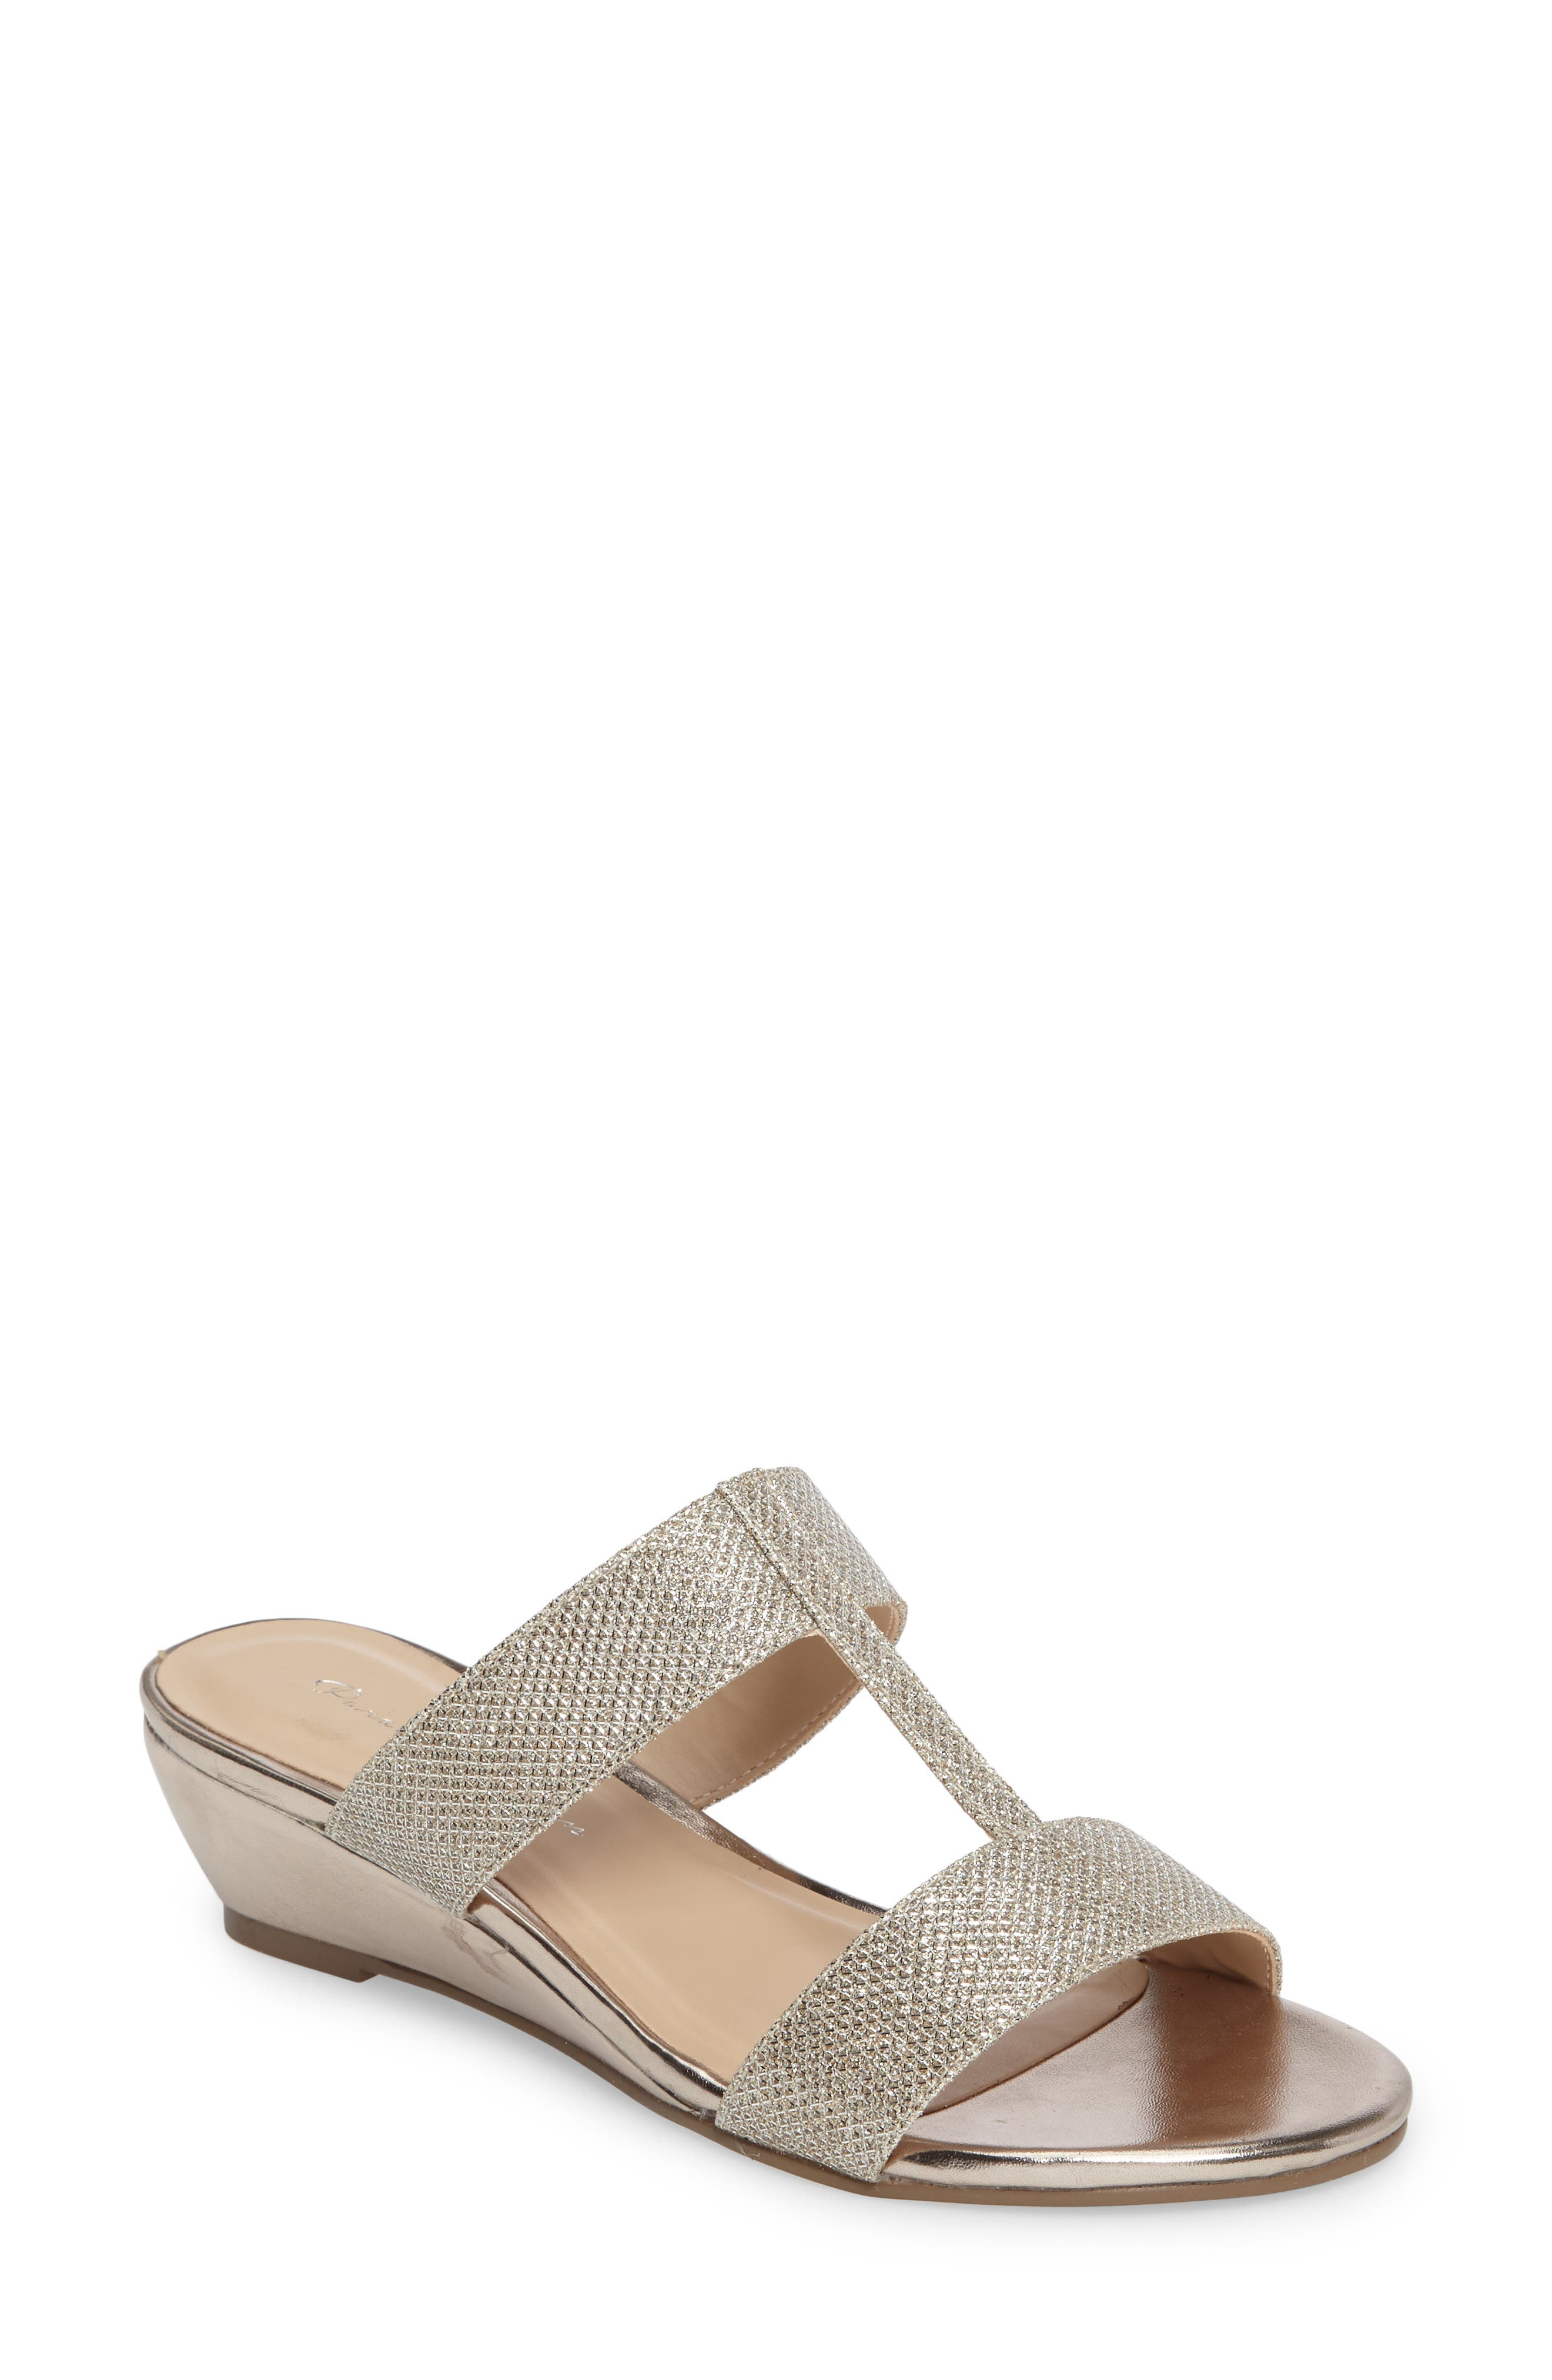 Melina Wedge Slide Sandal,                             Main thumbnail 2, color,